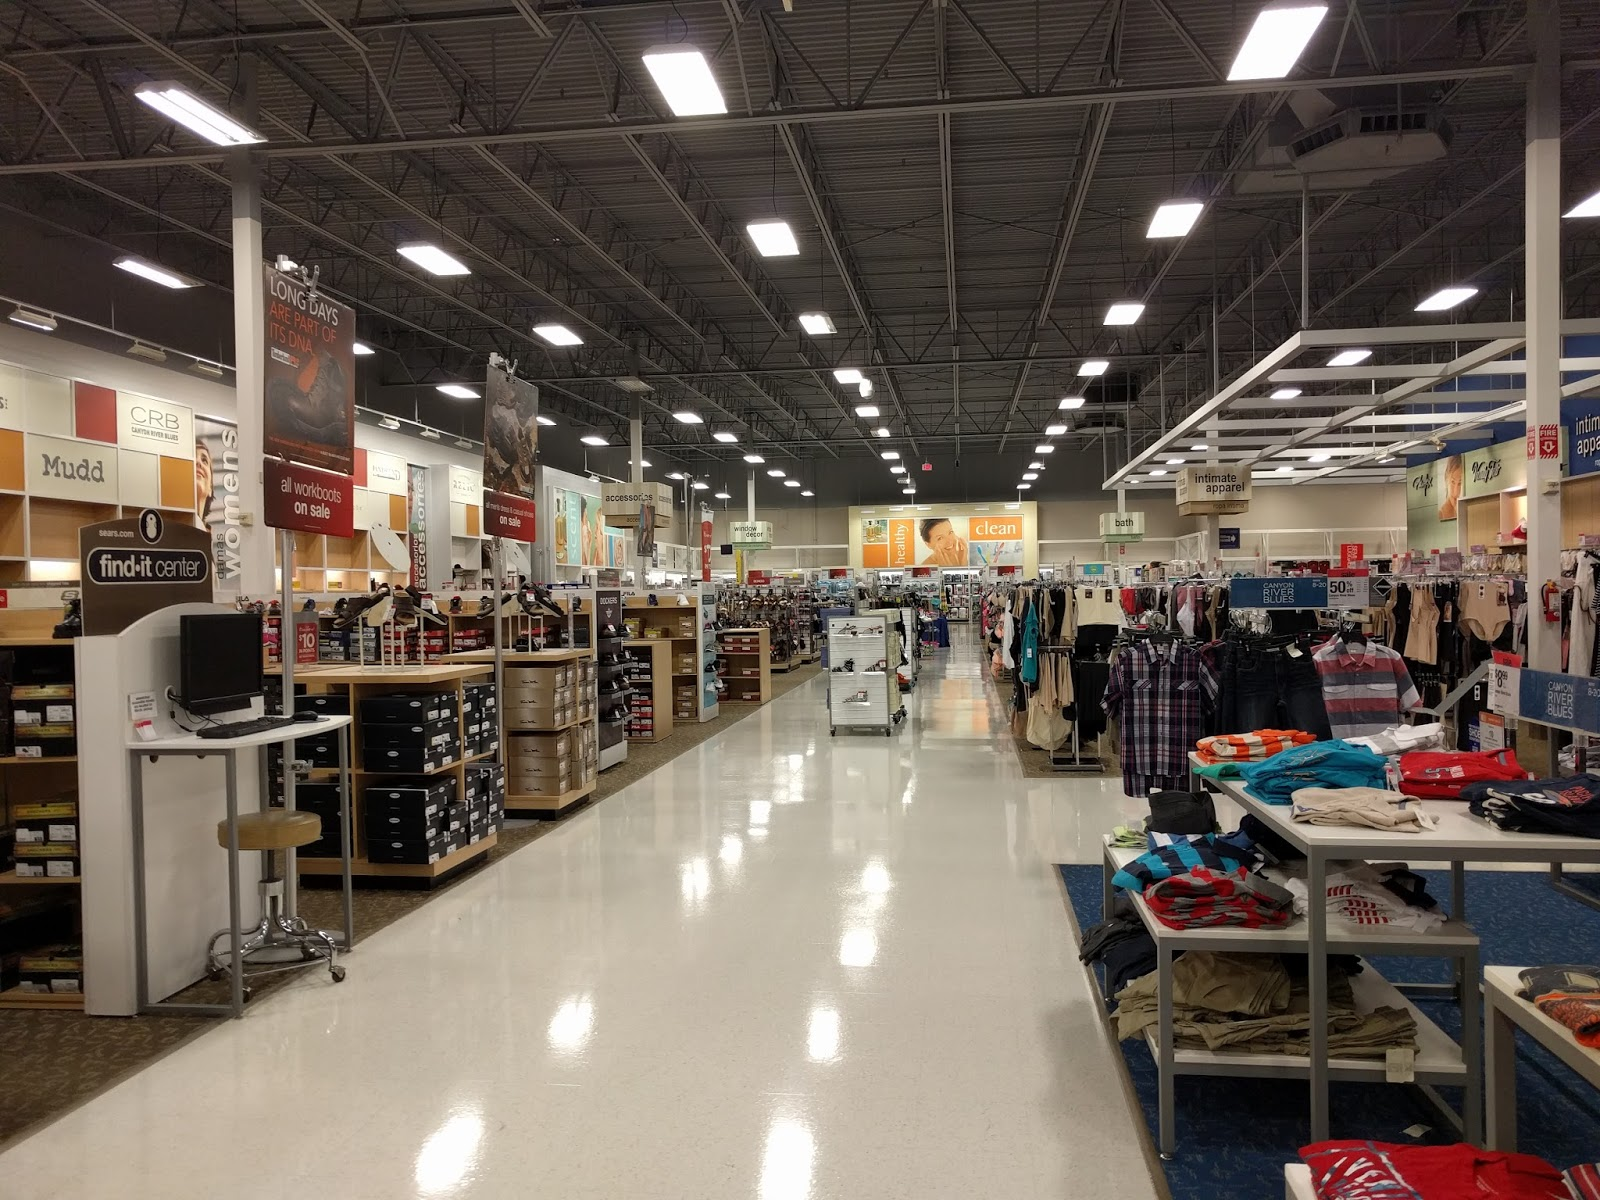 Find the Sears Outlet store location closest to you! Find your local store's location, hours, phone number & more. Visit Sears Outlet today!